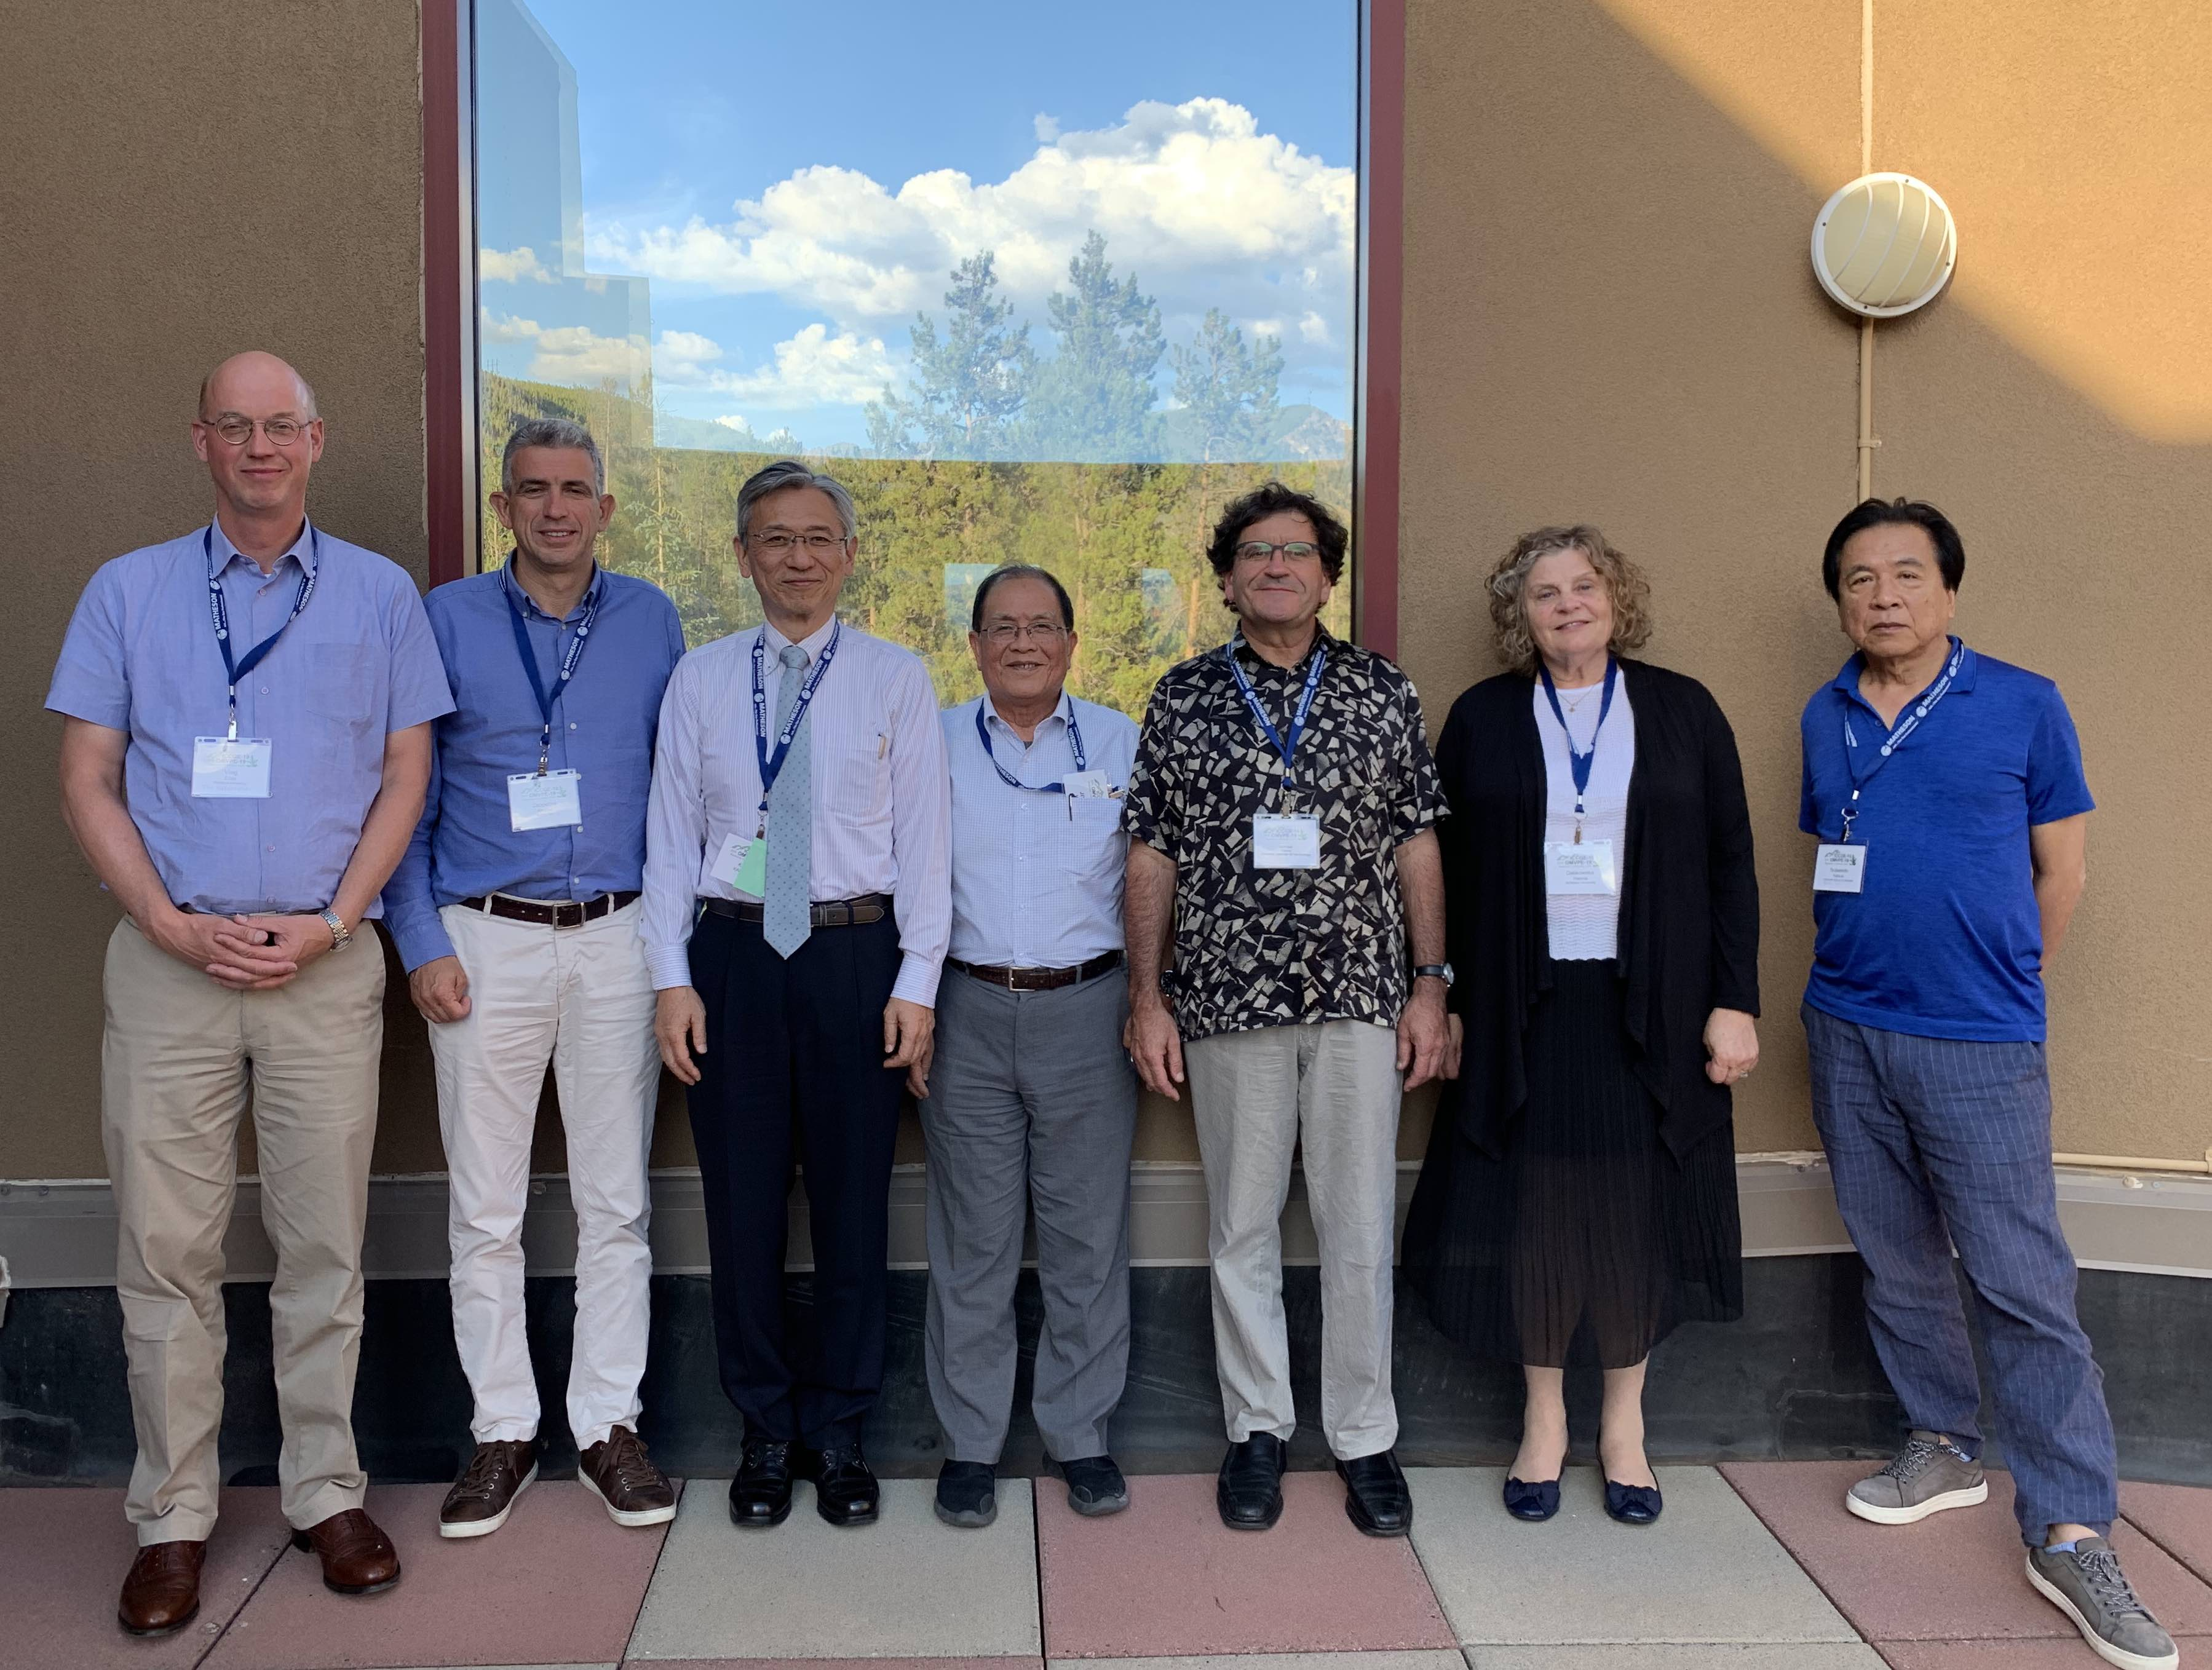 [Meeting of the CCGCM in Keystone, August  2019]